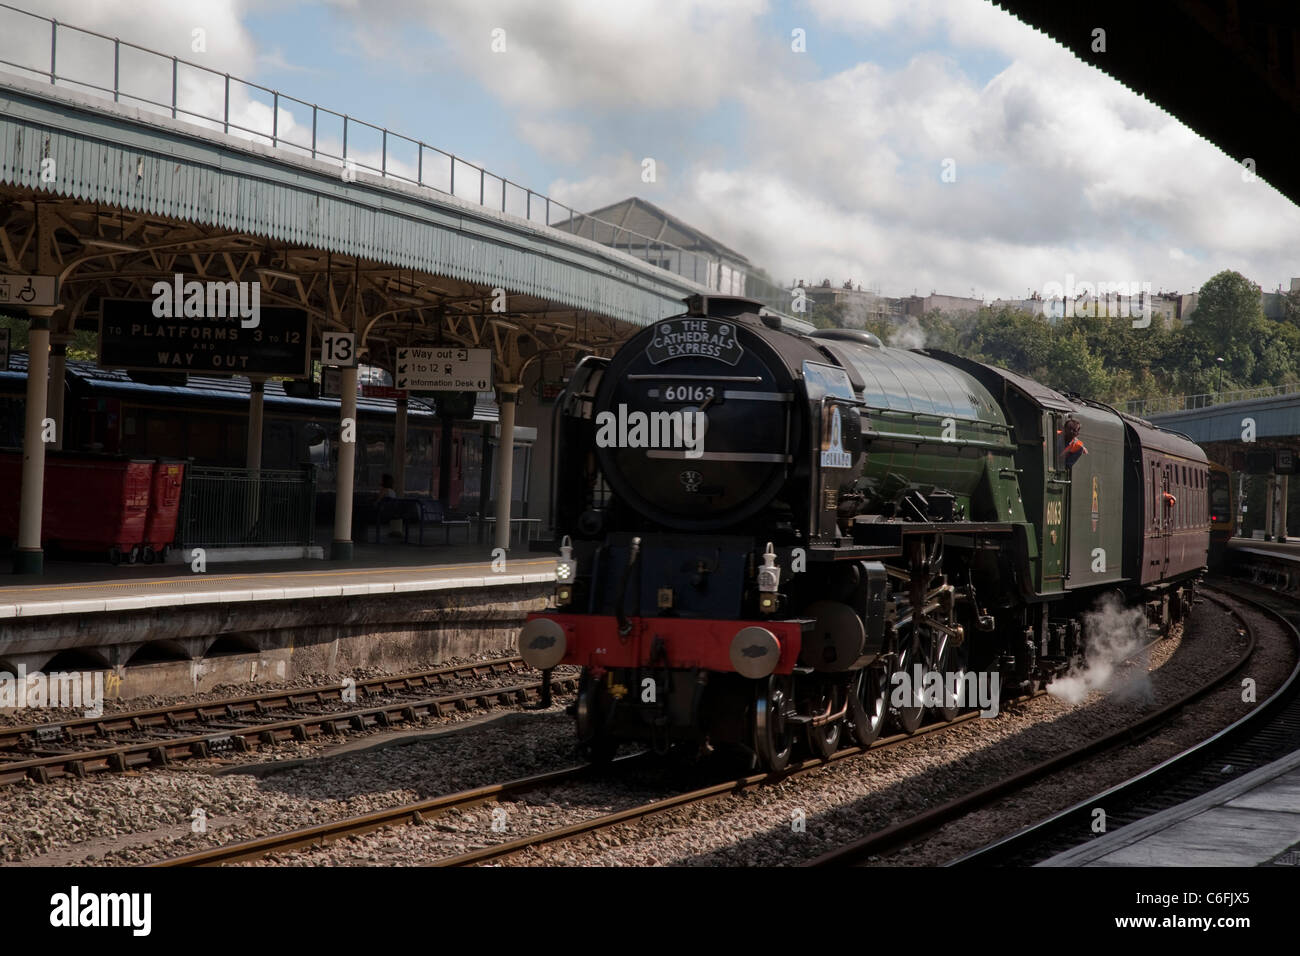 The Cathedrals Express passing through Bristol Temple Meads Station, Bristol, England, UK Stock Photo